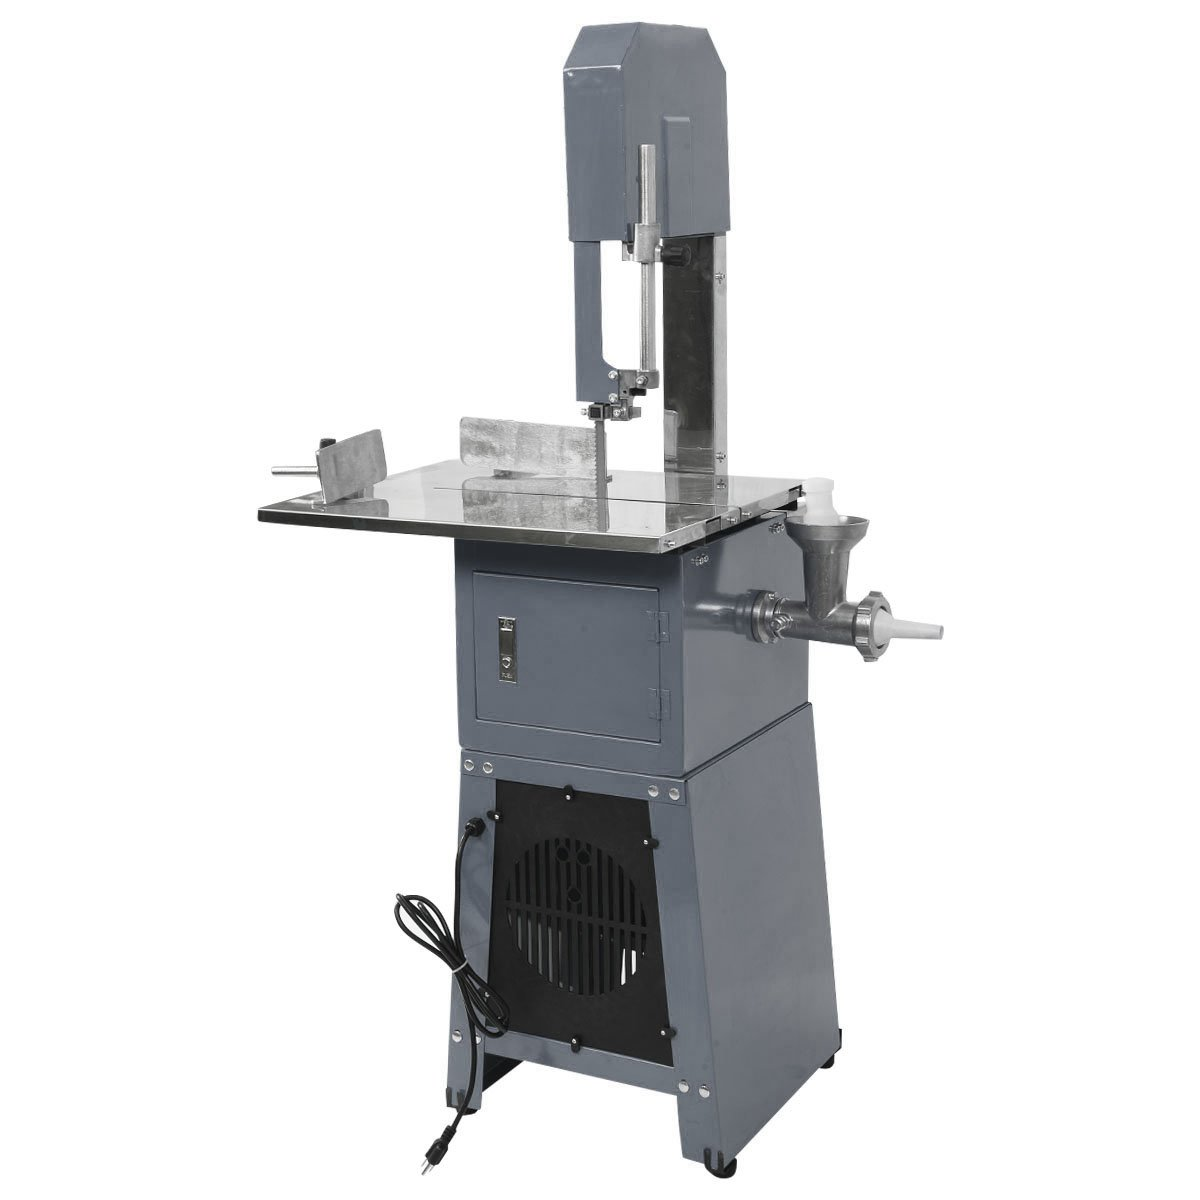 Tangkula Electric 550W Proffessional Stand Up Butcher Meat Band Saw & Grinder Processor Sausage (Grey) by Tangkula